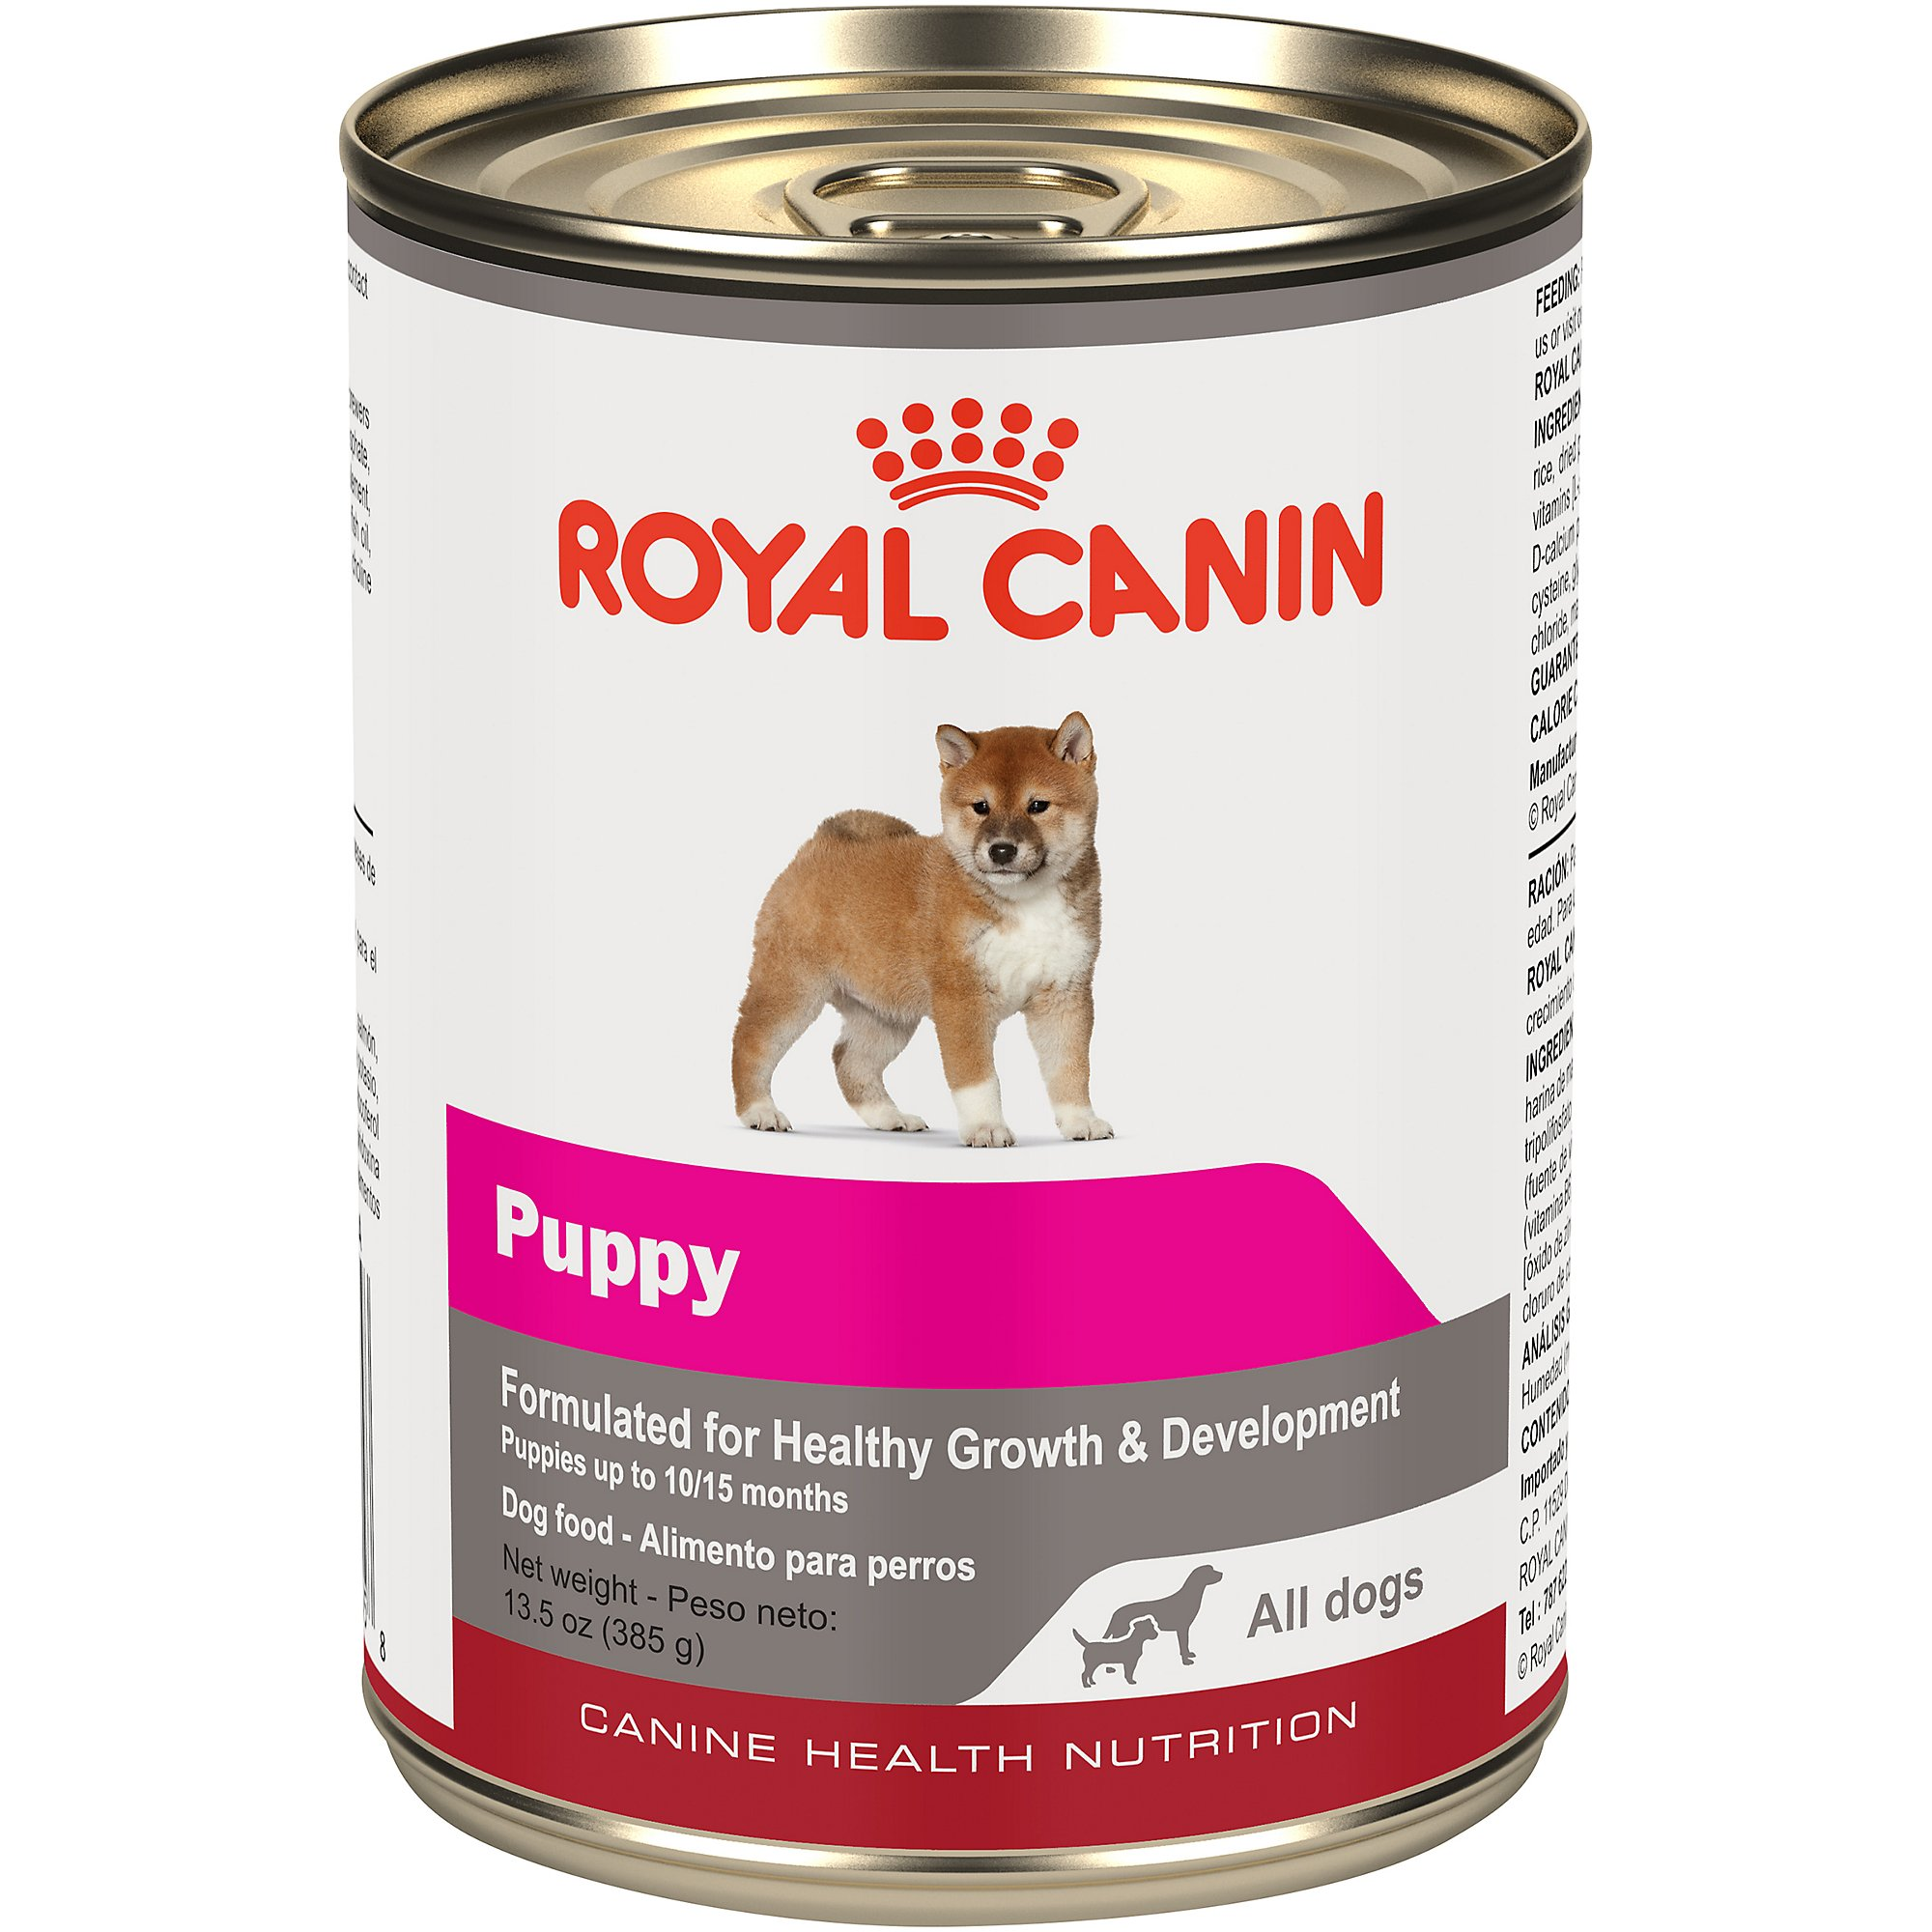 royal canin canine health nutrition puppy in gel wet dog food petco. Black Bedroom Furniture Sets. Home Design Ideas